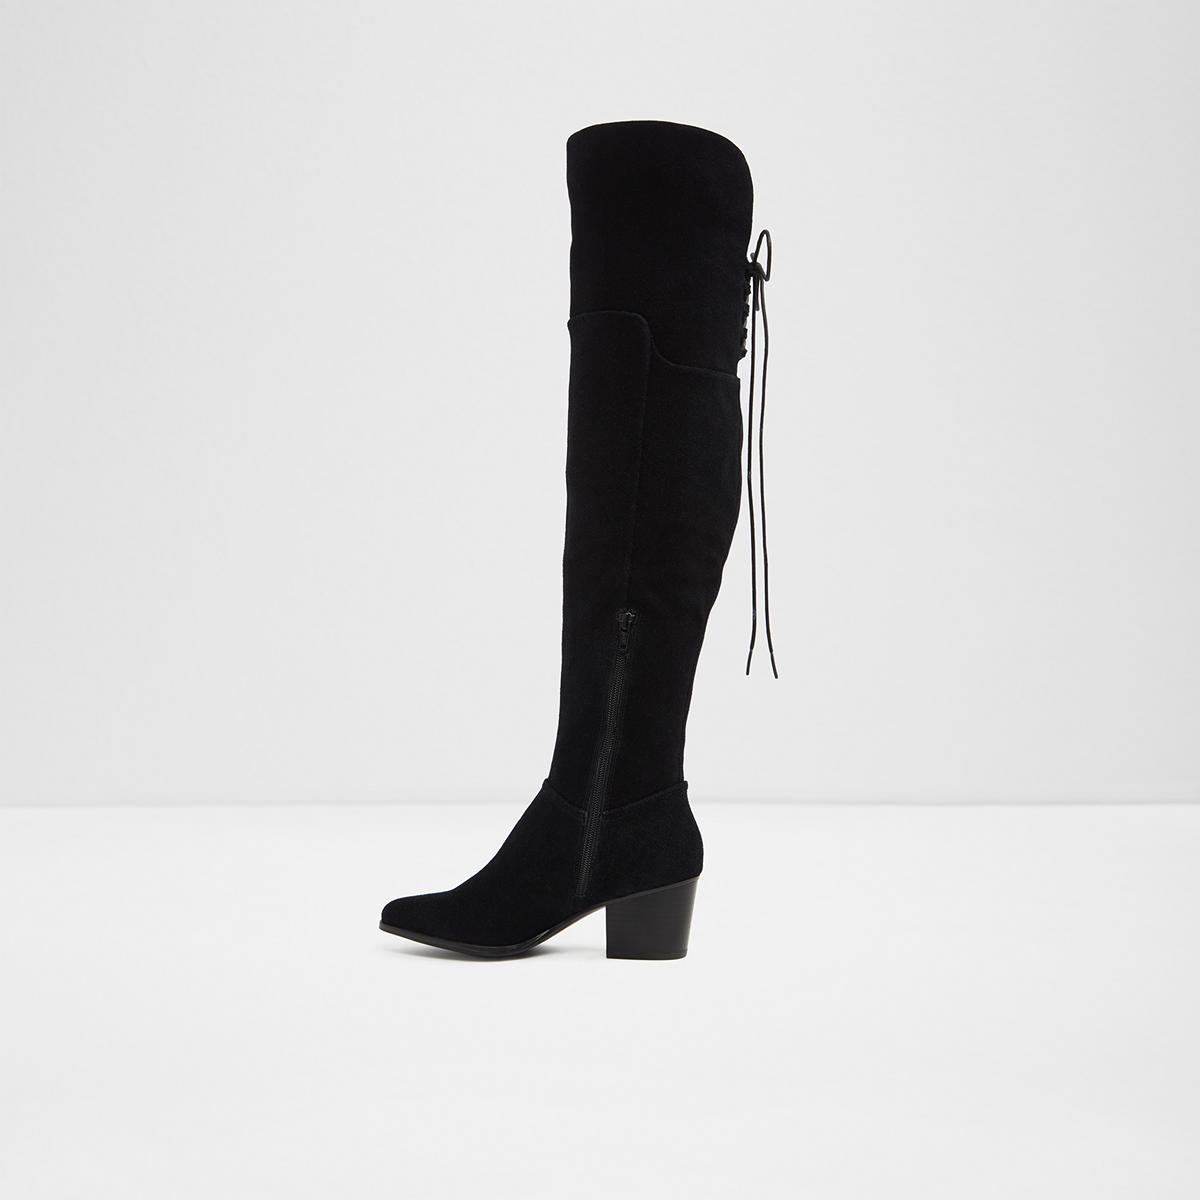 e1f29de6cdf Jeffres Black Other Women s Boots